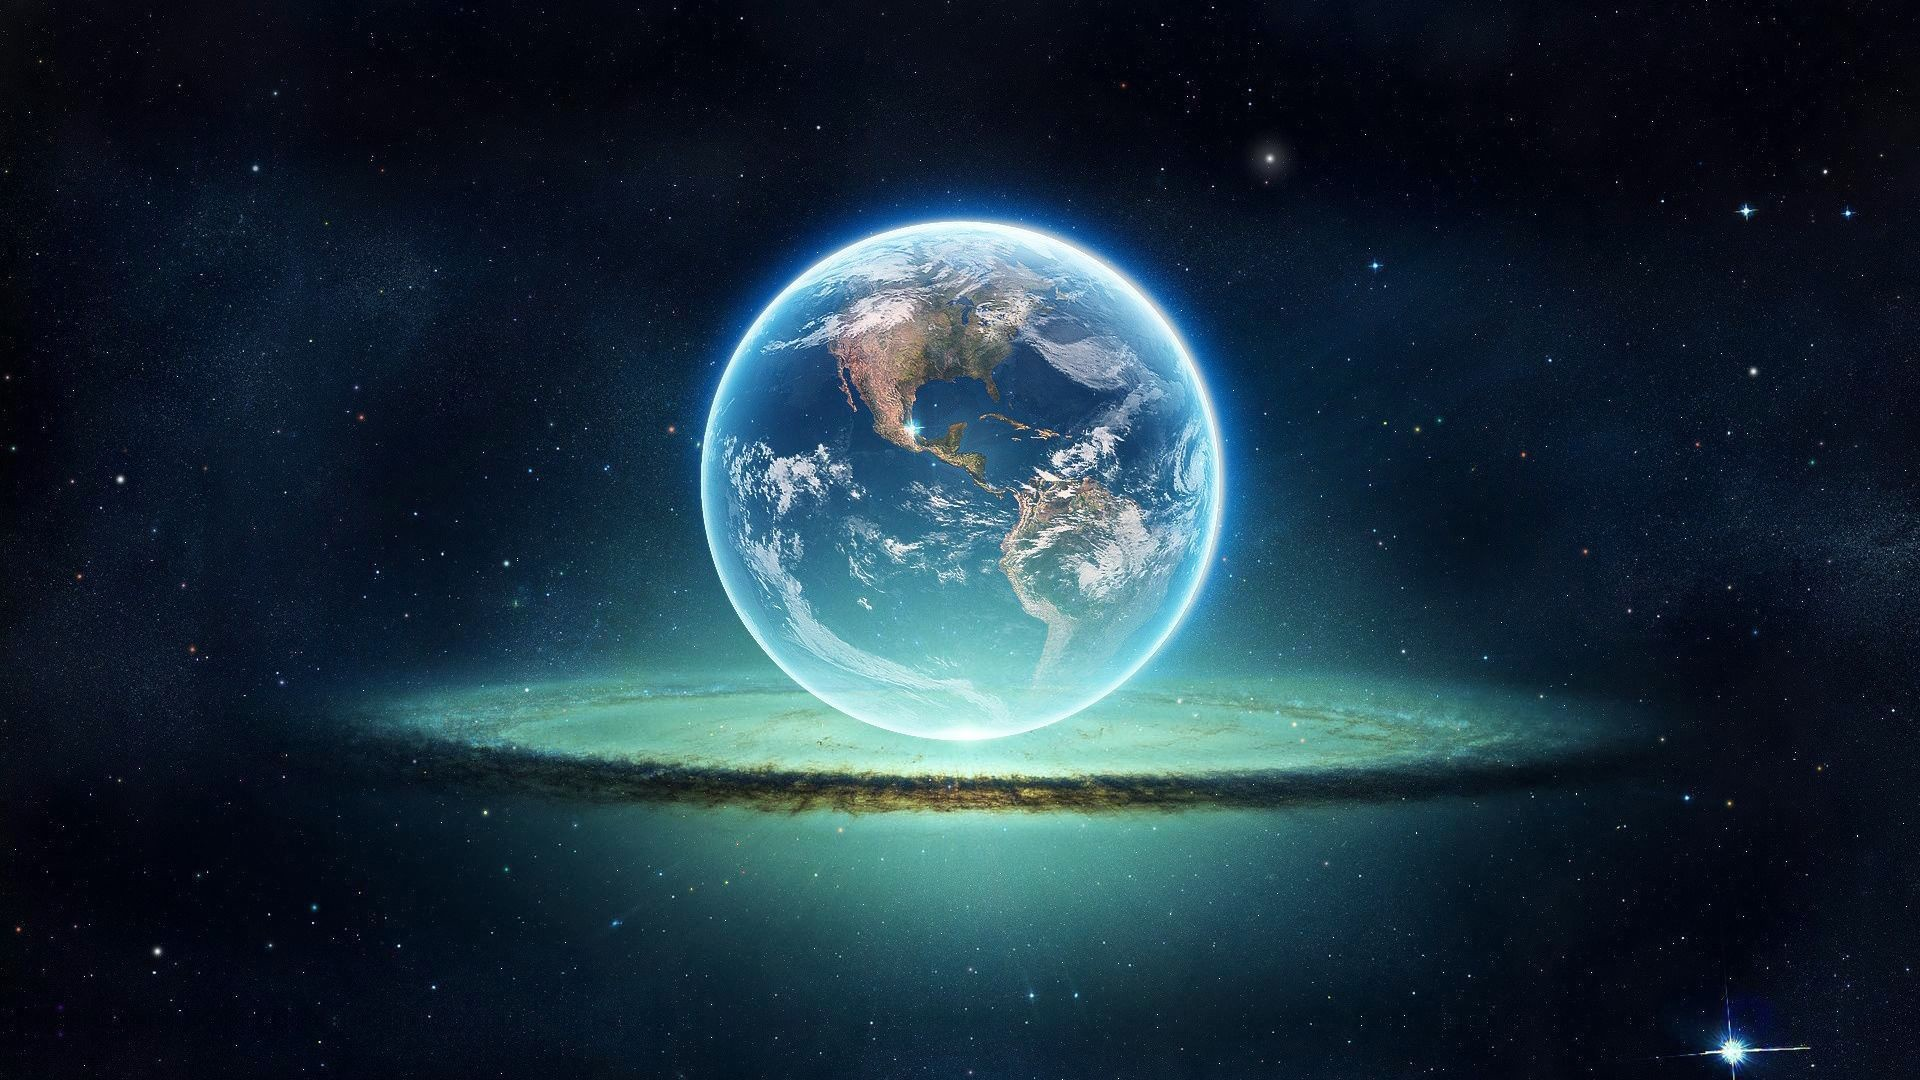 Earth Wallpaper HD 1080p 78 images